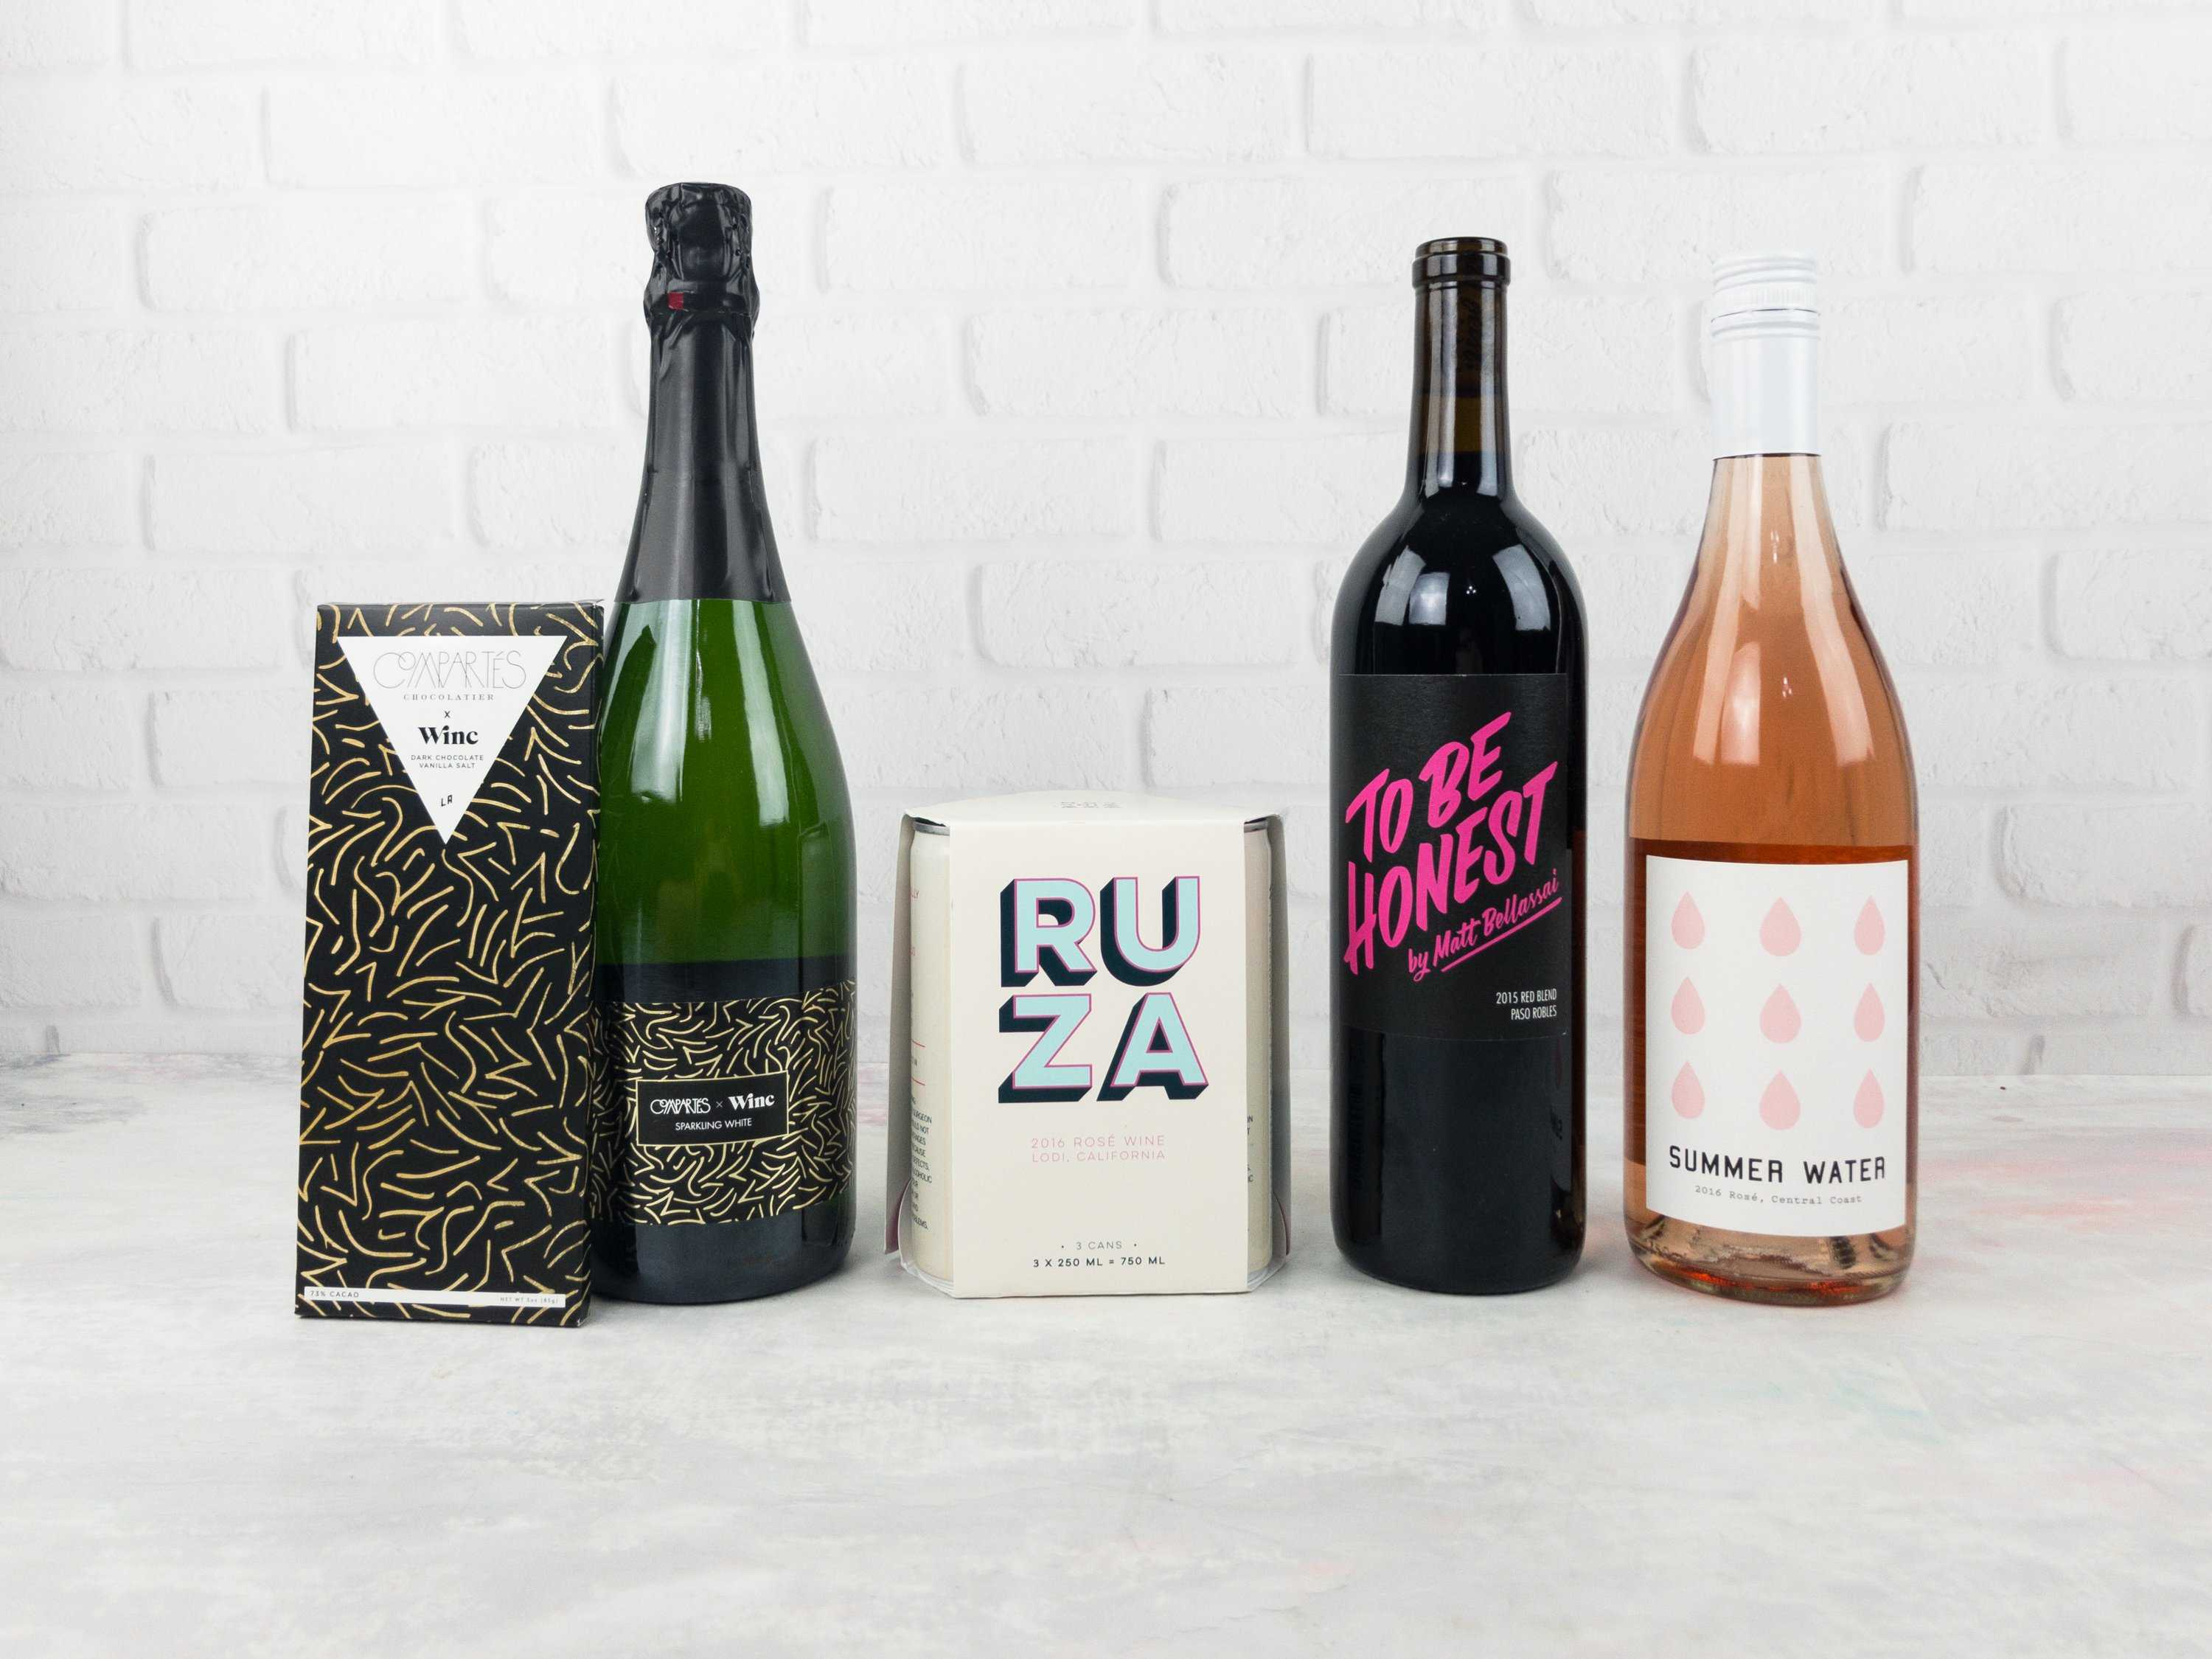 Winc May 2017 Subscription Box Review & $20 Off Coupon